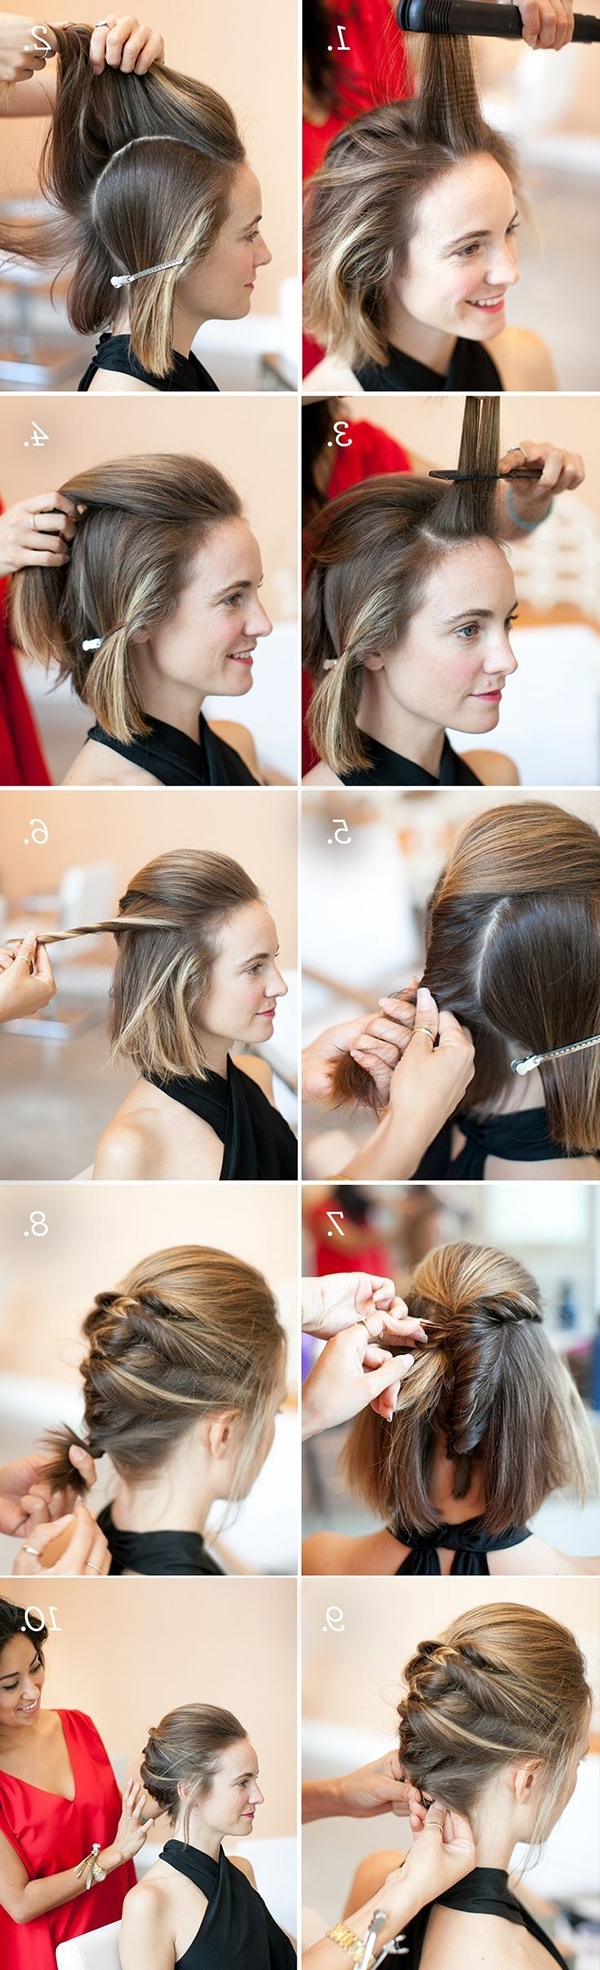 20 Easy No Heat Summer Hairstyles For Girls With Medium Length Hair Throughout Easy Updos For Thick Medium Length Hair (View 4 of 15)